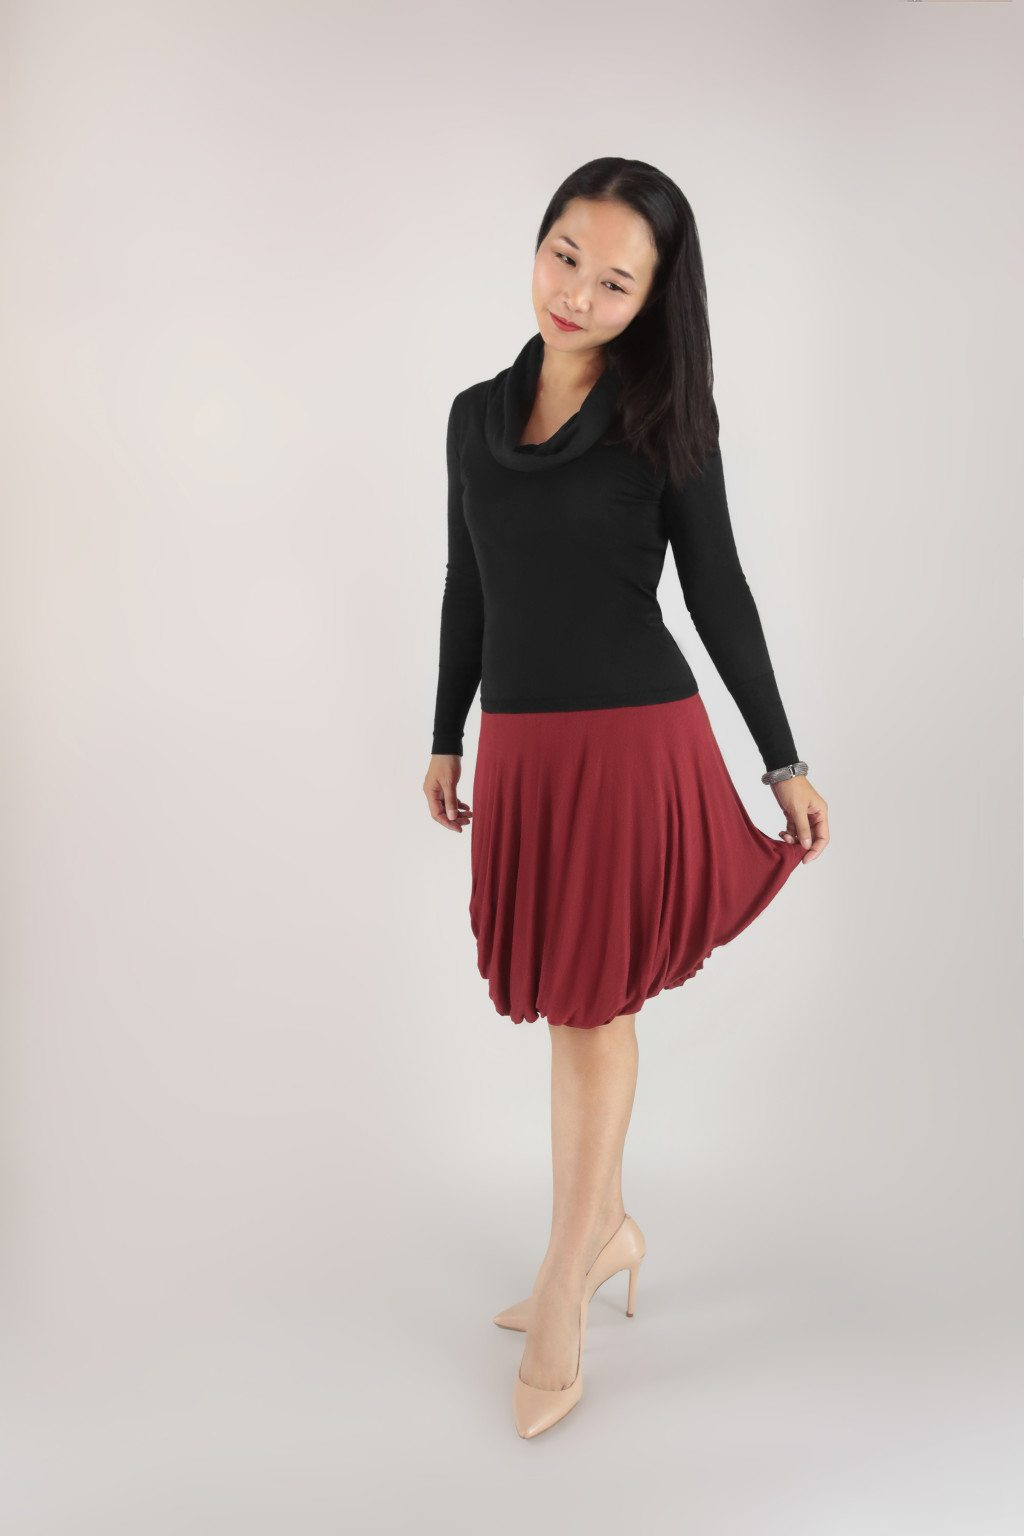 Bella Sunshine Designs' Kelly's Twirly Skirt